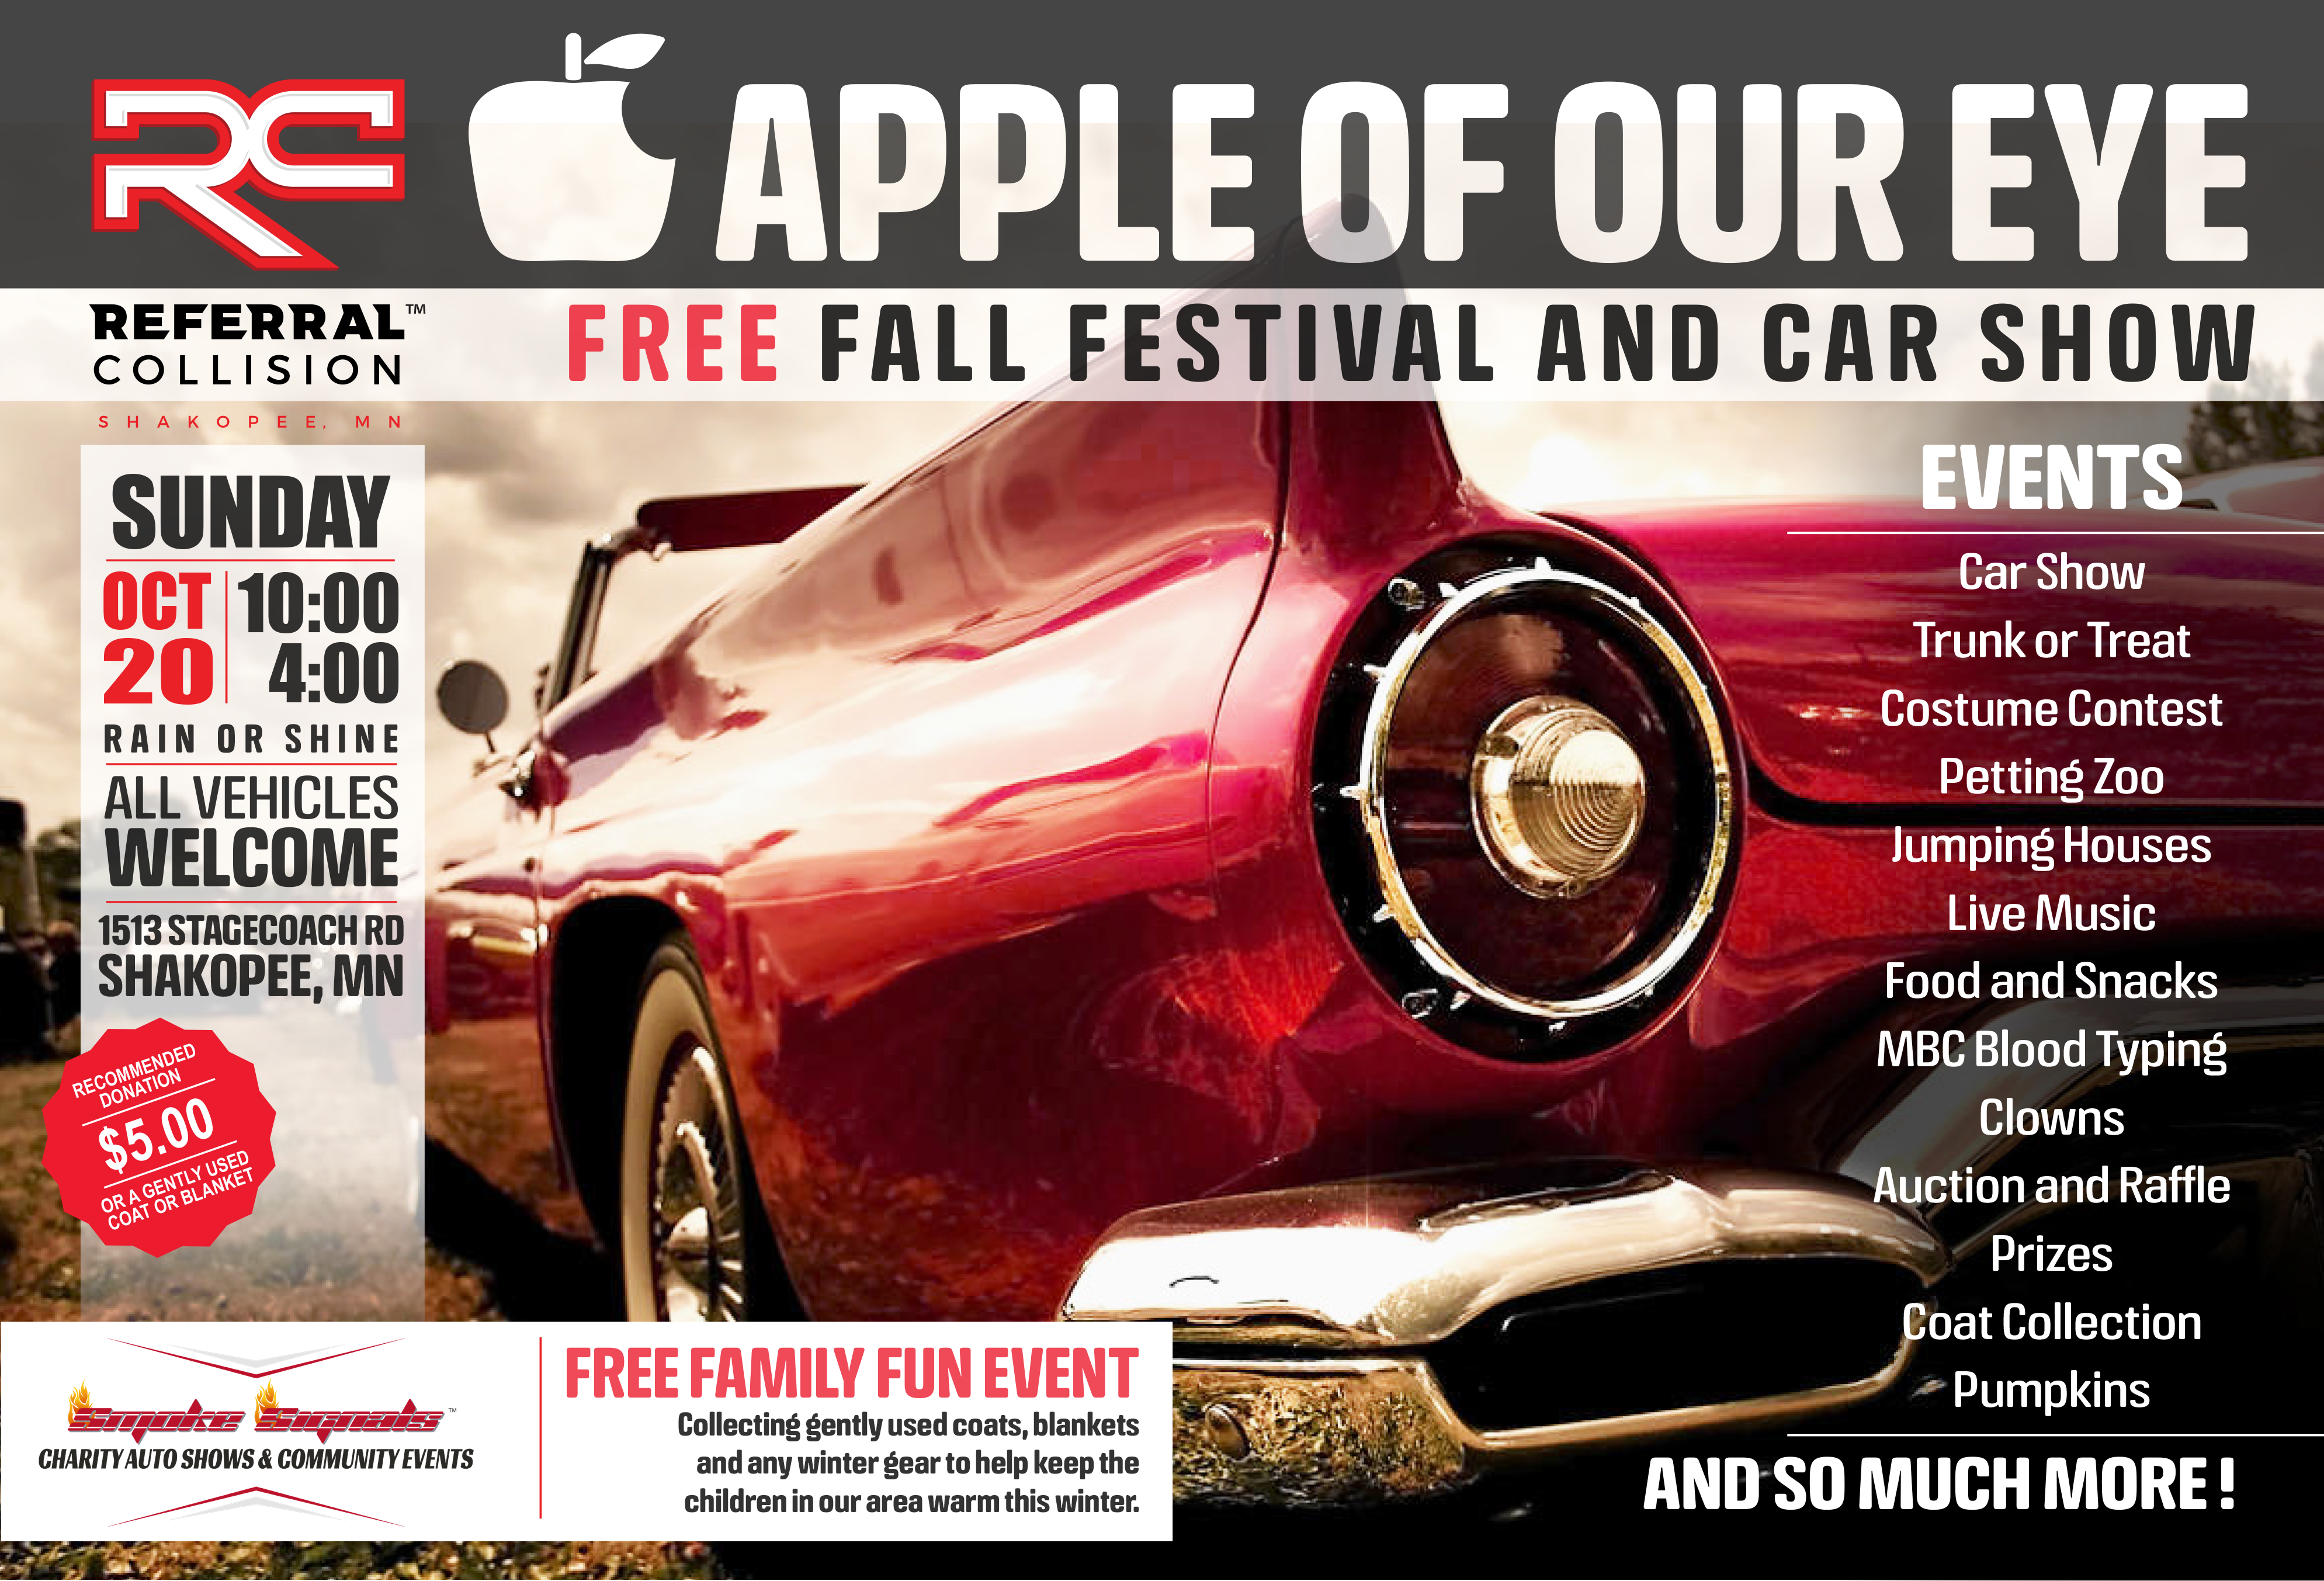 Apple of Our Eye Car Show and Fall Fesitval